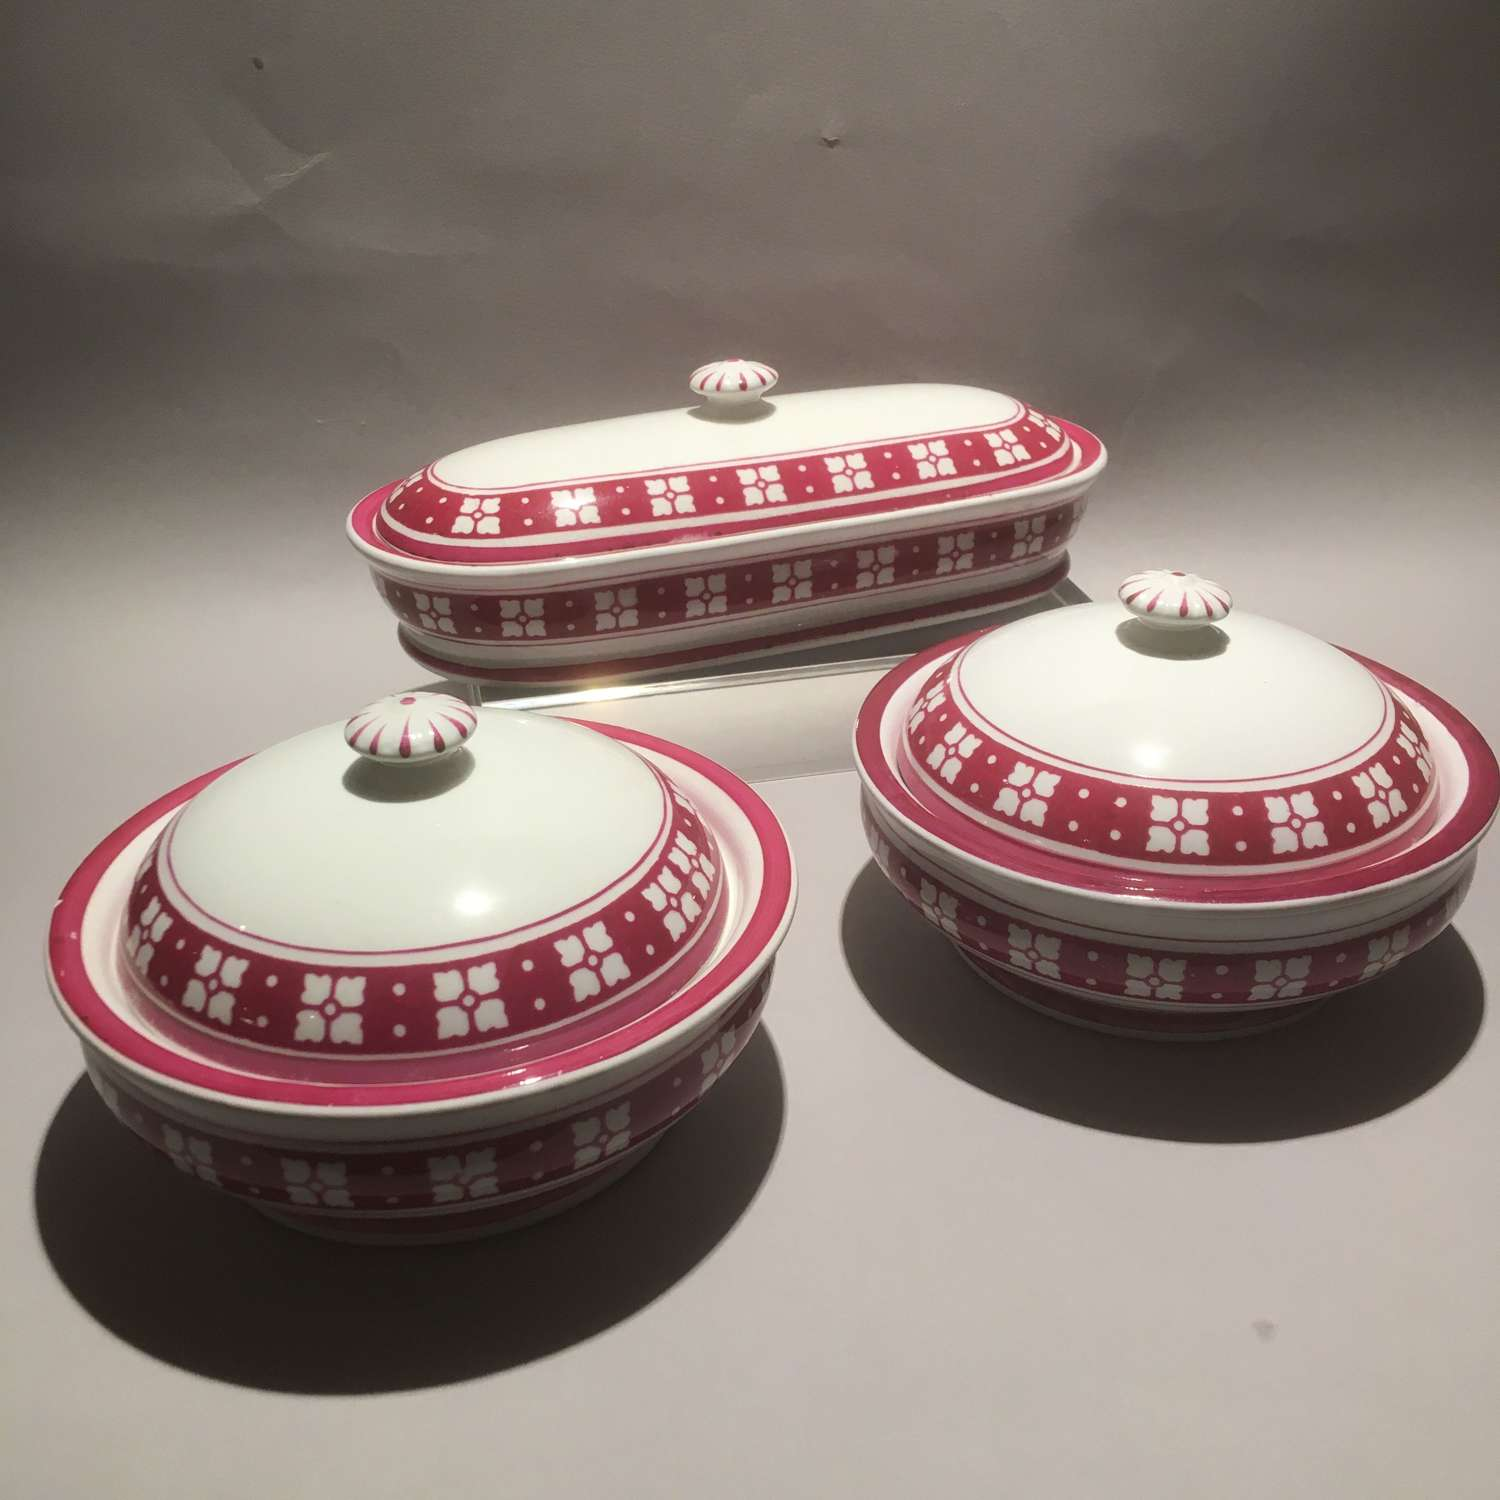 Minton Gothic Revival Soap Dishes and Toothbrush or Razor Box